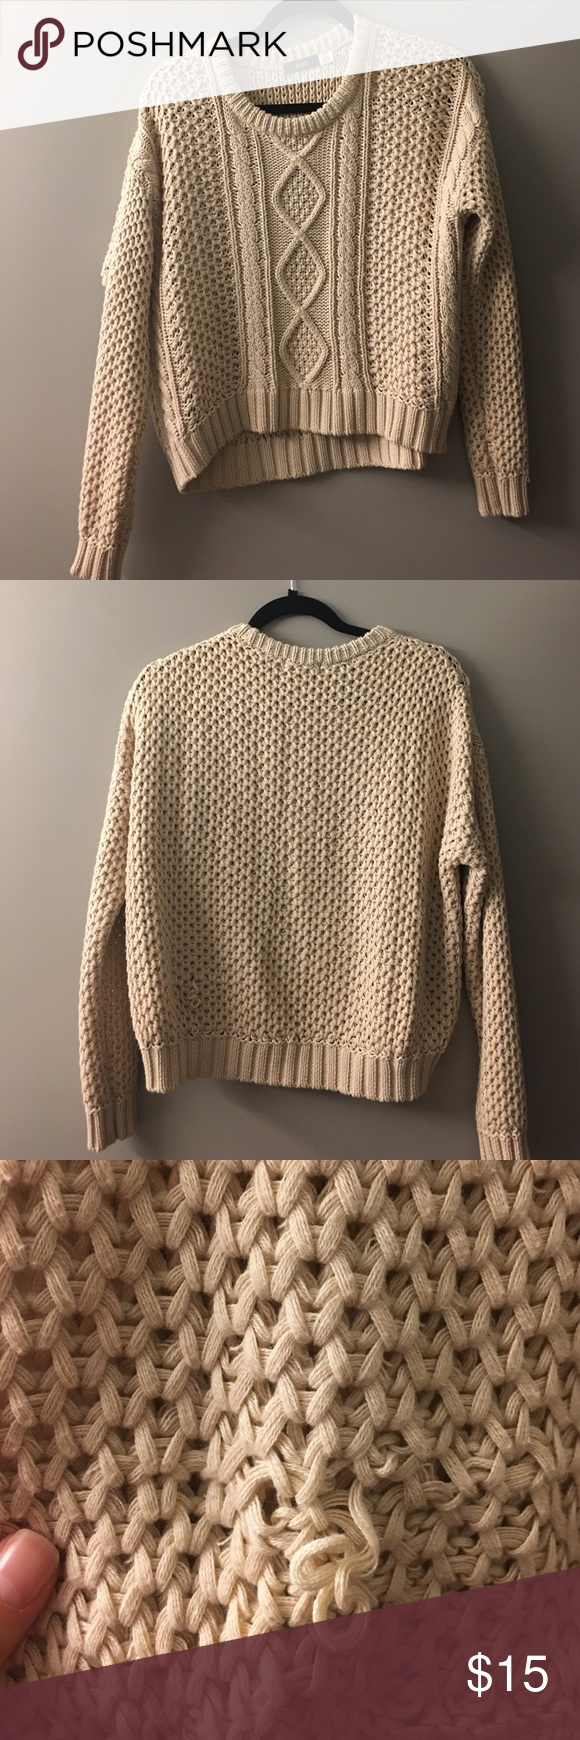 Cream colored crochet knit sweater | Cozy and Customer support